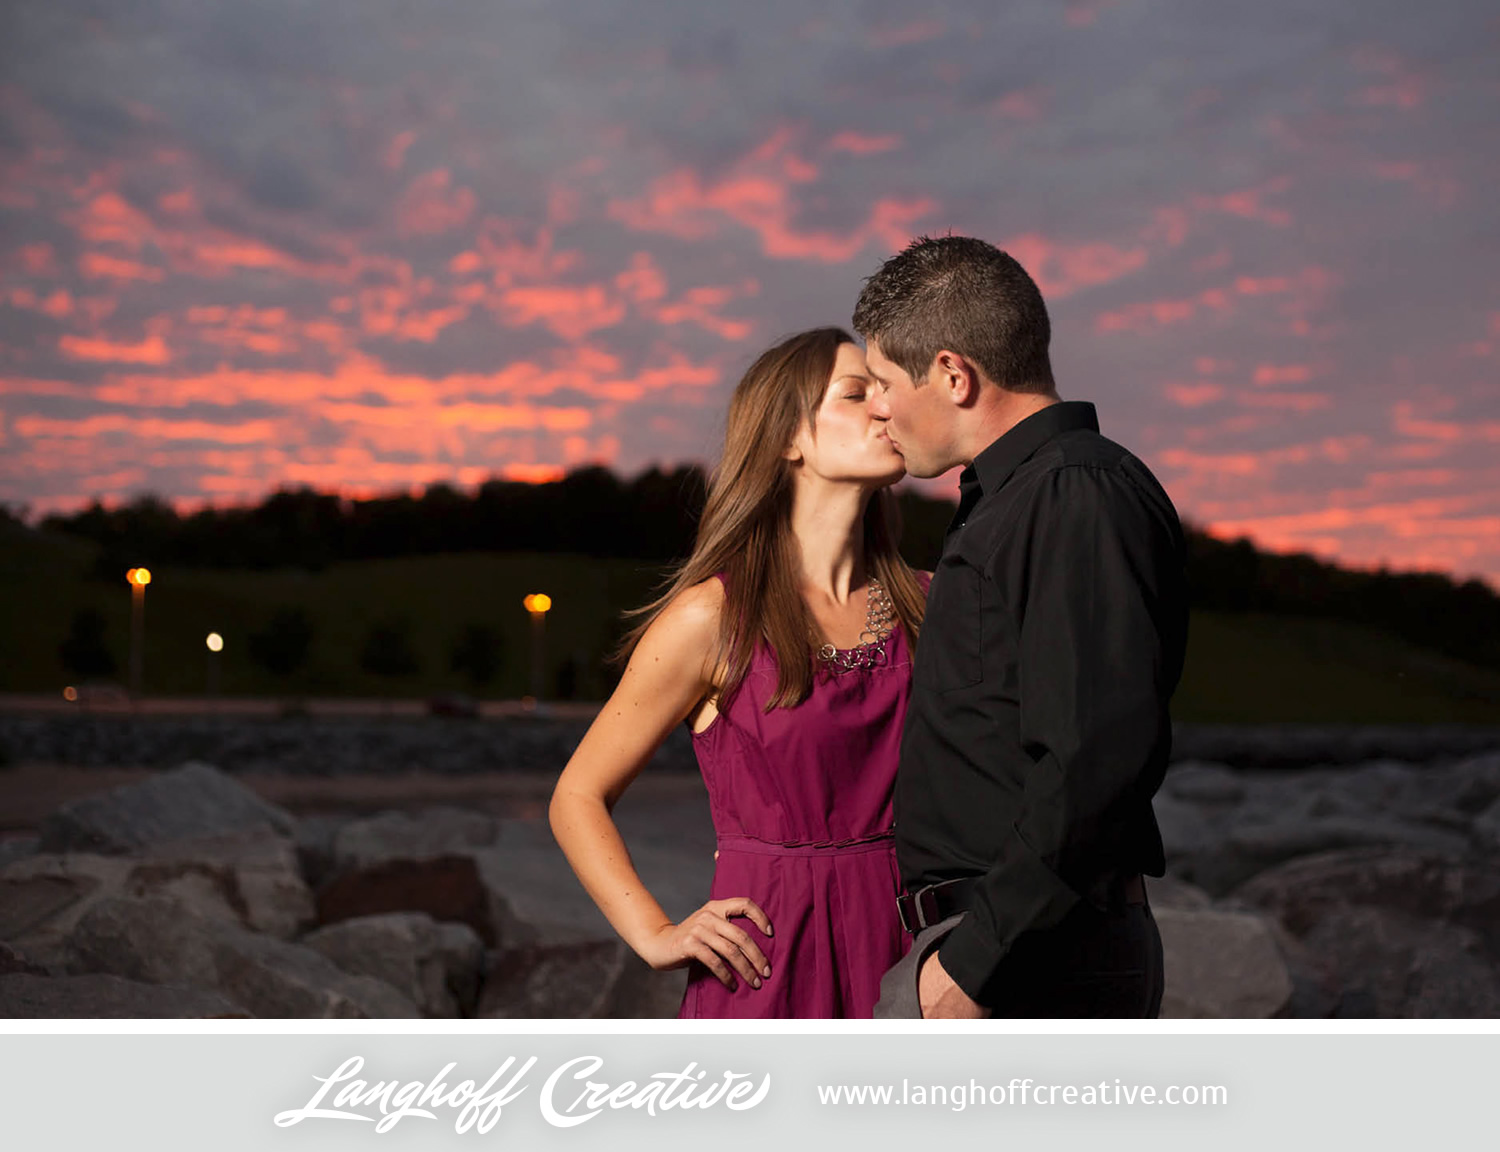 """Adam and Michelle are getting married on November 2, 2013 at  Circa on Seventh  in downtown Kenosha followed by a honeymoon in Riviera Maya, Mexico. """"I honestly can't wait to be Adam's wife and officially a Zimmerman. I look forward to seeing what's next for our life story and hopefully starting a family,"""" Michelle said. """"Maybe having the 'wife' title will help me with learning things like cooking, cleaning and gardening - ha!"""""""